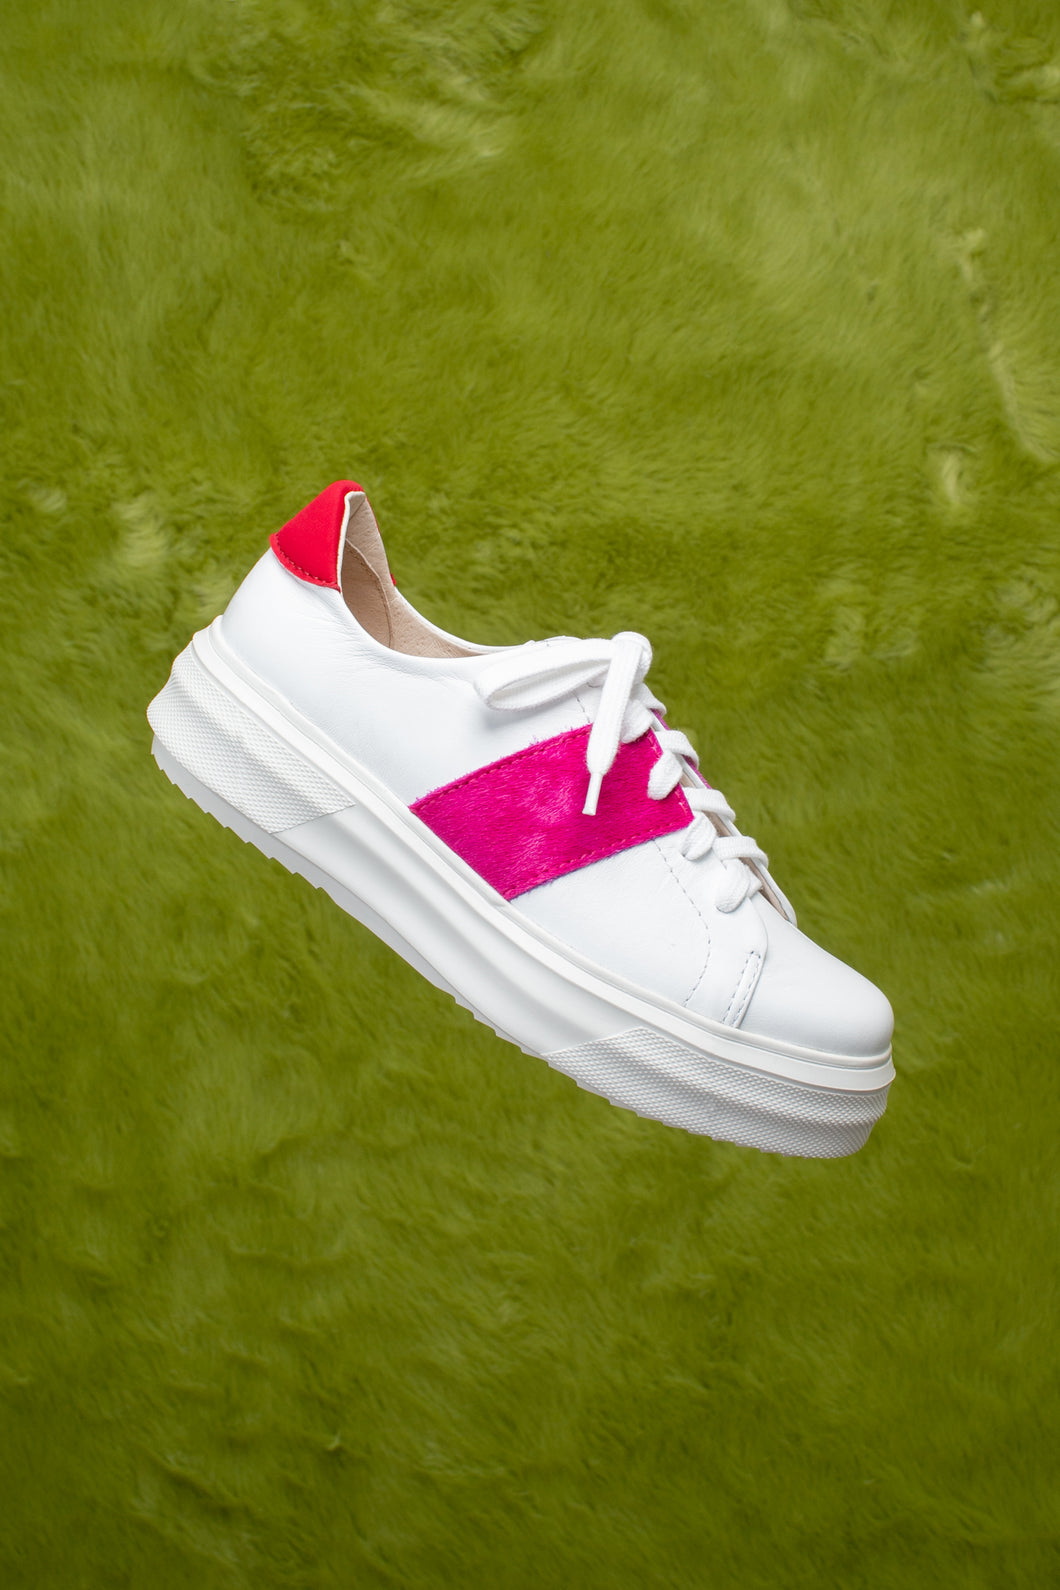 White leather lace up sneaker with fuchsia pink pony hair.